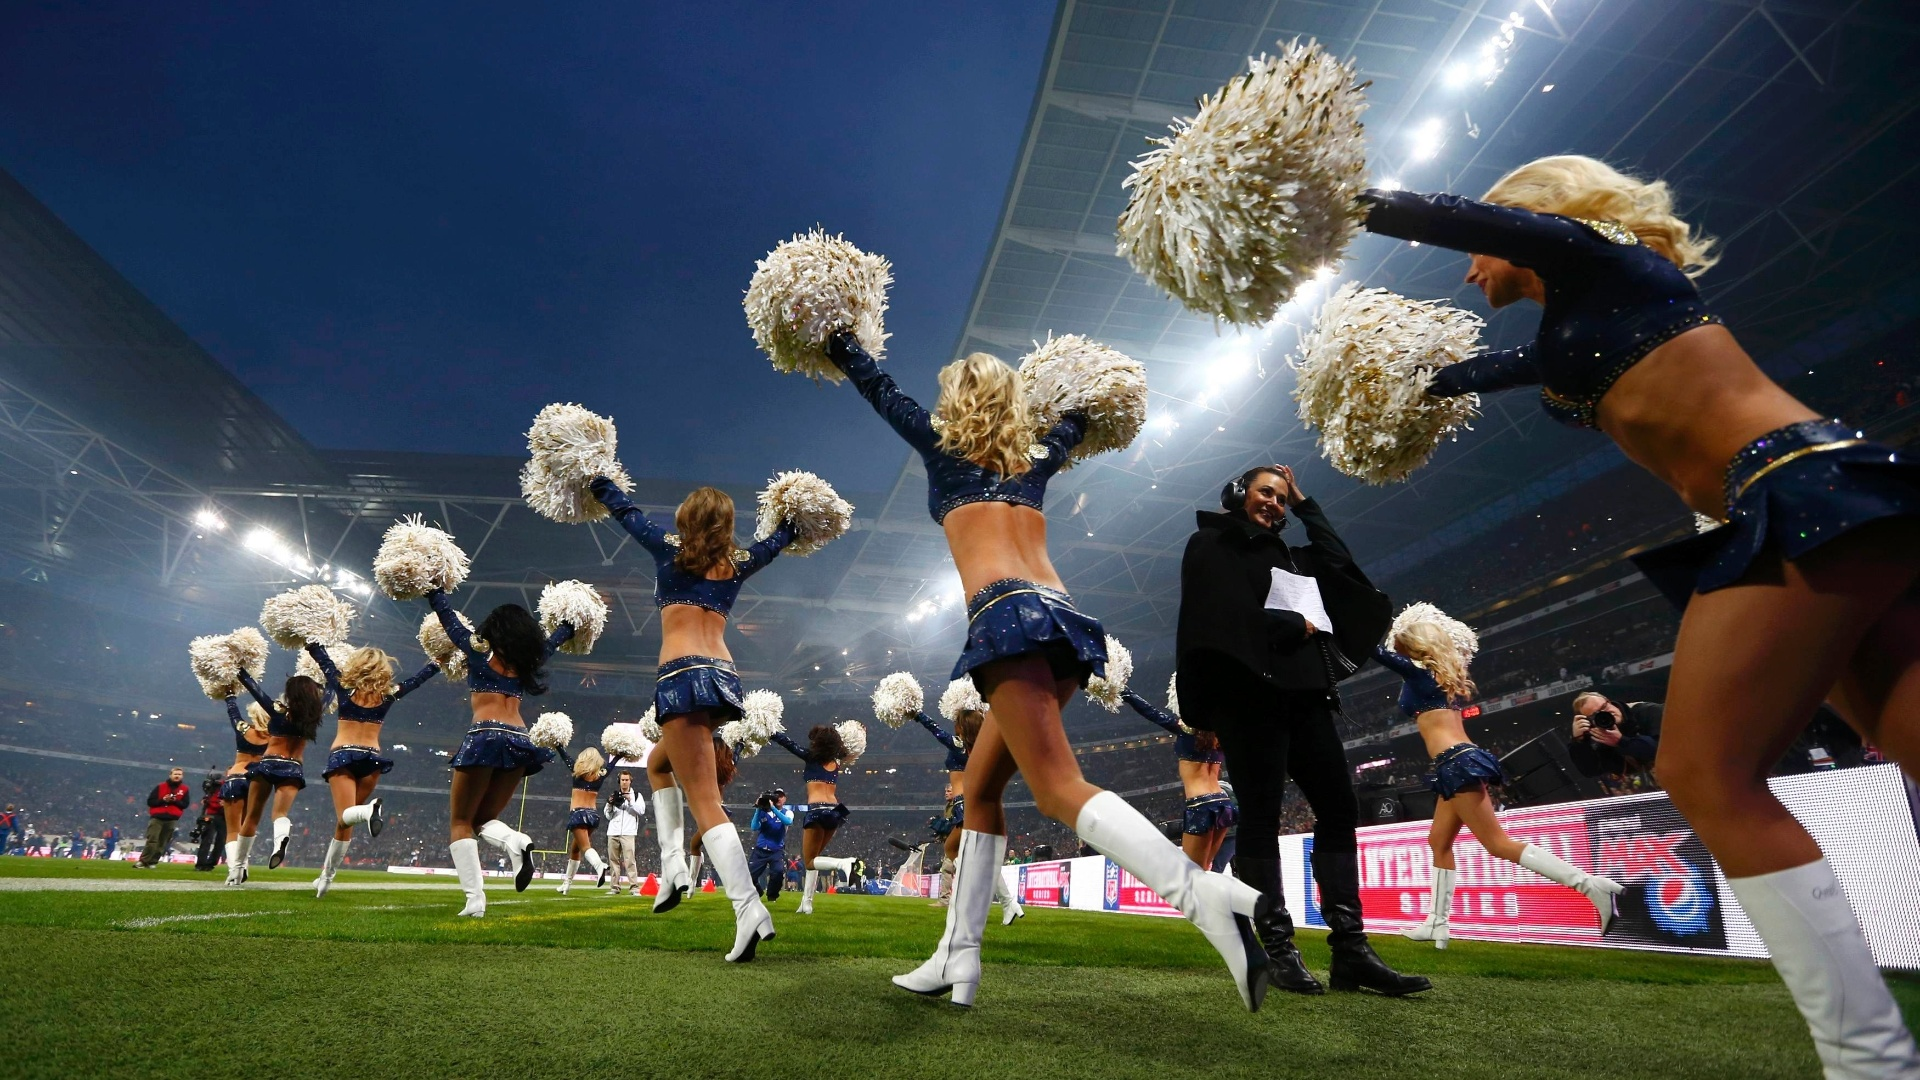 Cherleaders entram no campo de Wembley antes  jogo da NFL (28/10/2012)